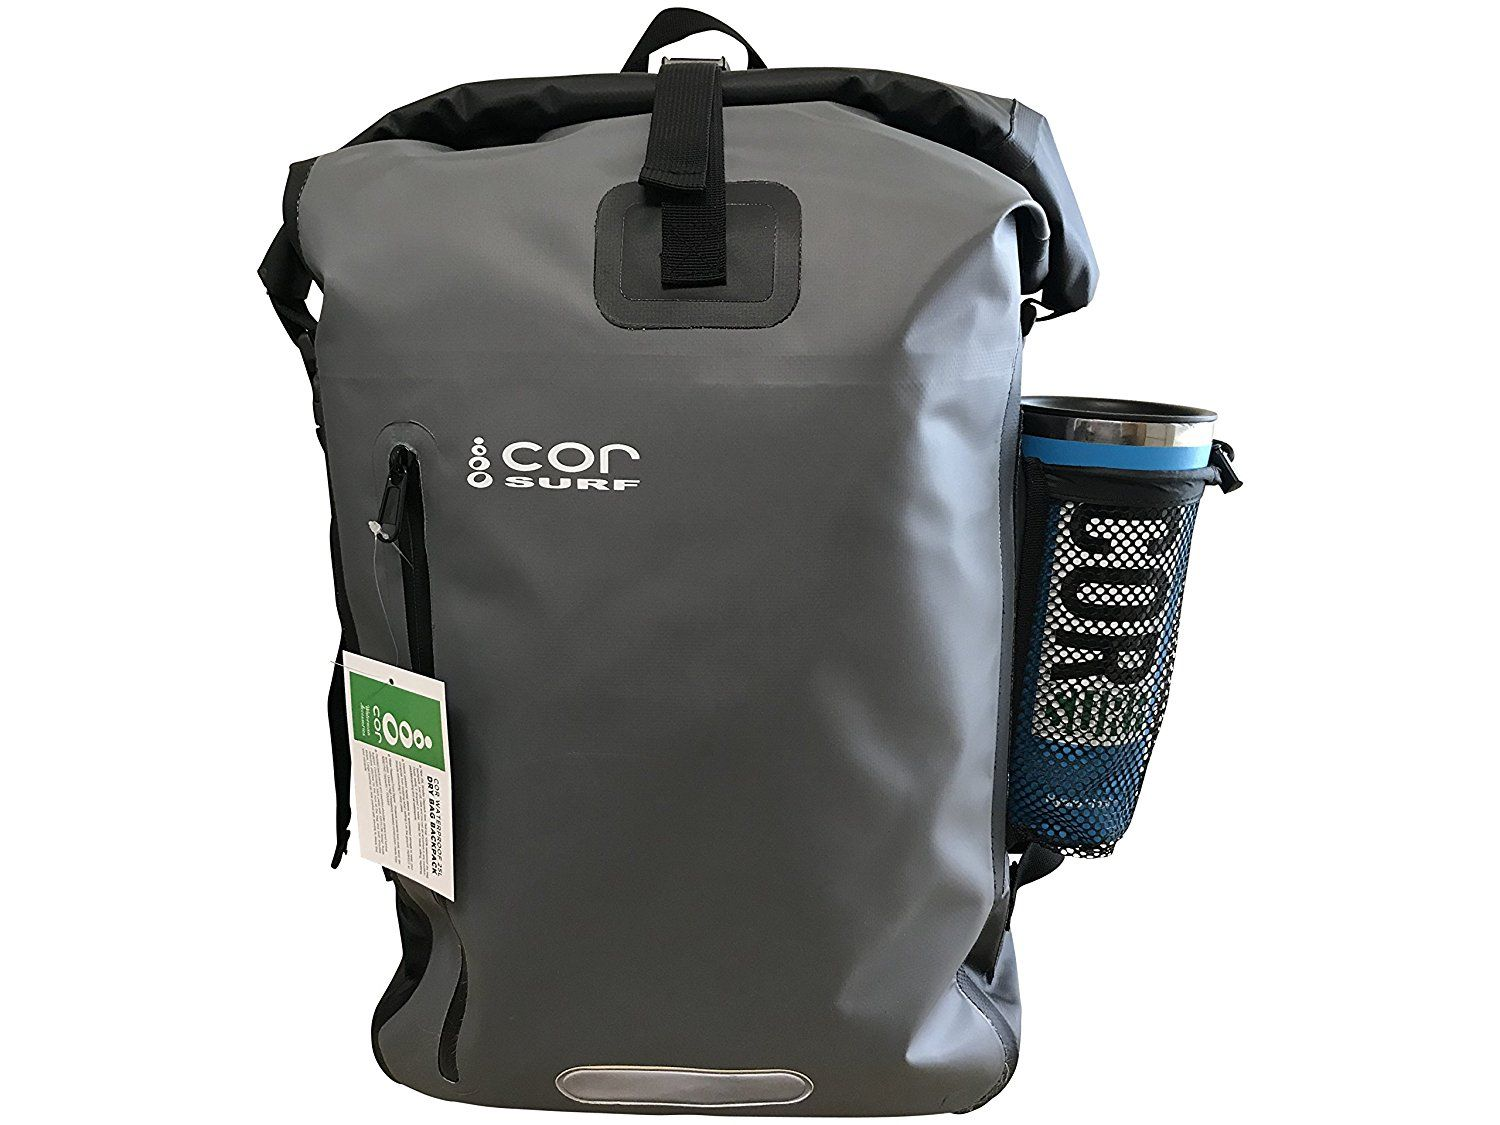 057255ec7bd Amazon.com   COR Waterproof Dry Bag Roll-Top Backpack with Padded Laptop  Sleeve   25L and 40L   Travel, Camping, Hiking, Rafting, Surfing   Sports    ...